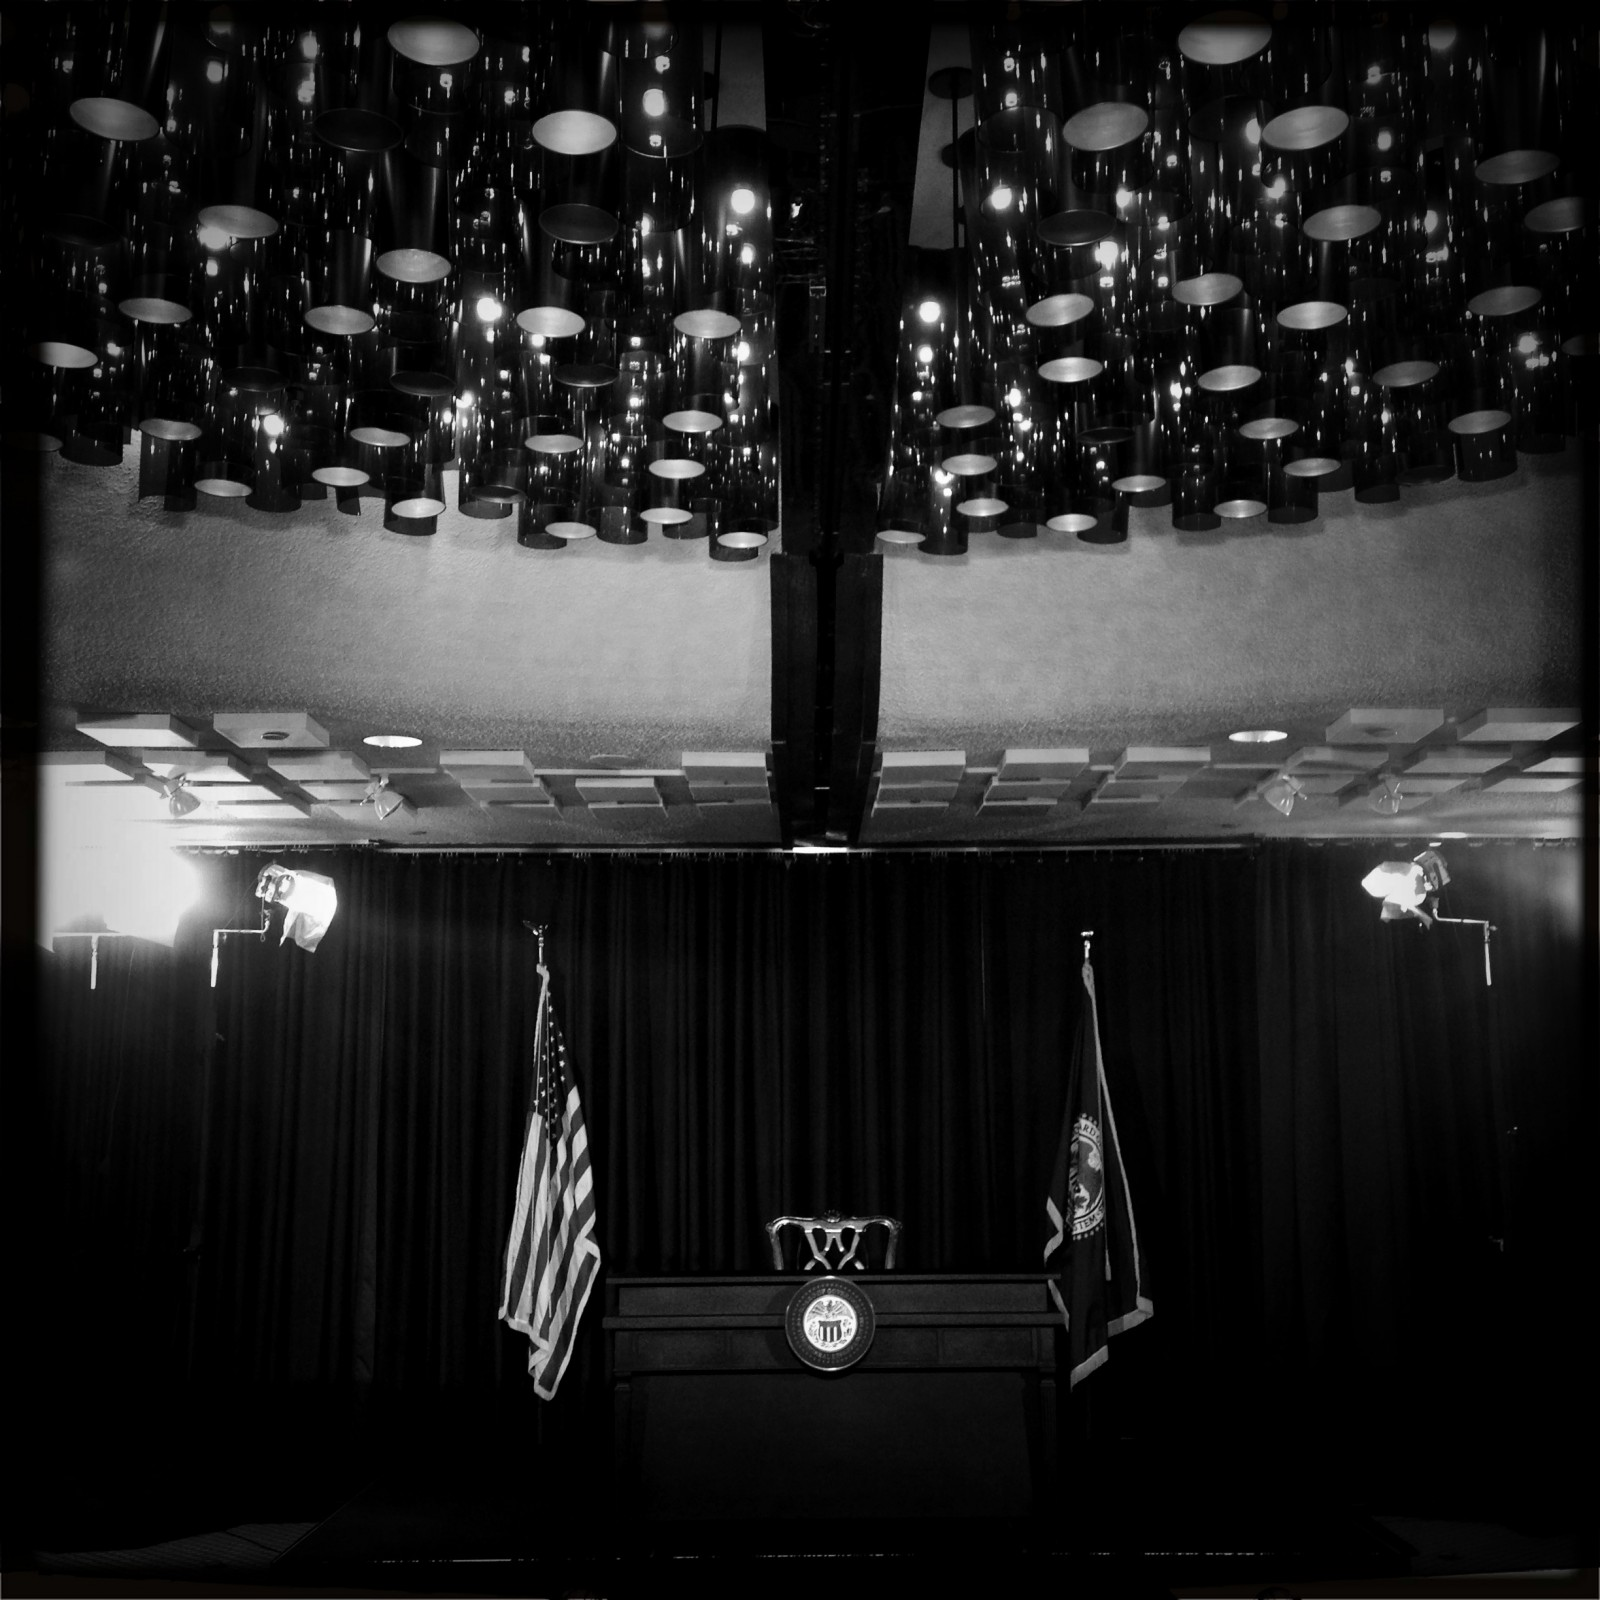 The stage is set for Federal Reserve Chairman Ben Bernanke to appear at a news conference following the Federal Open Market Committee meeting in Washington, D.C. on Wednesday, Sept. 18, 2013.